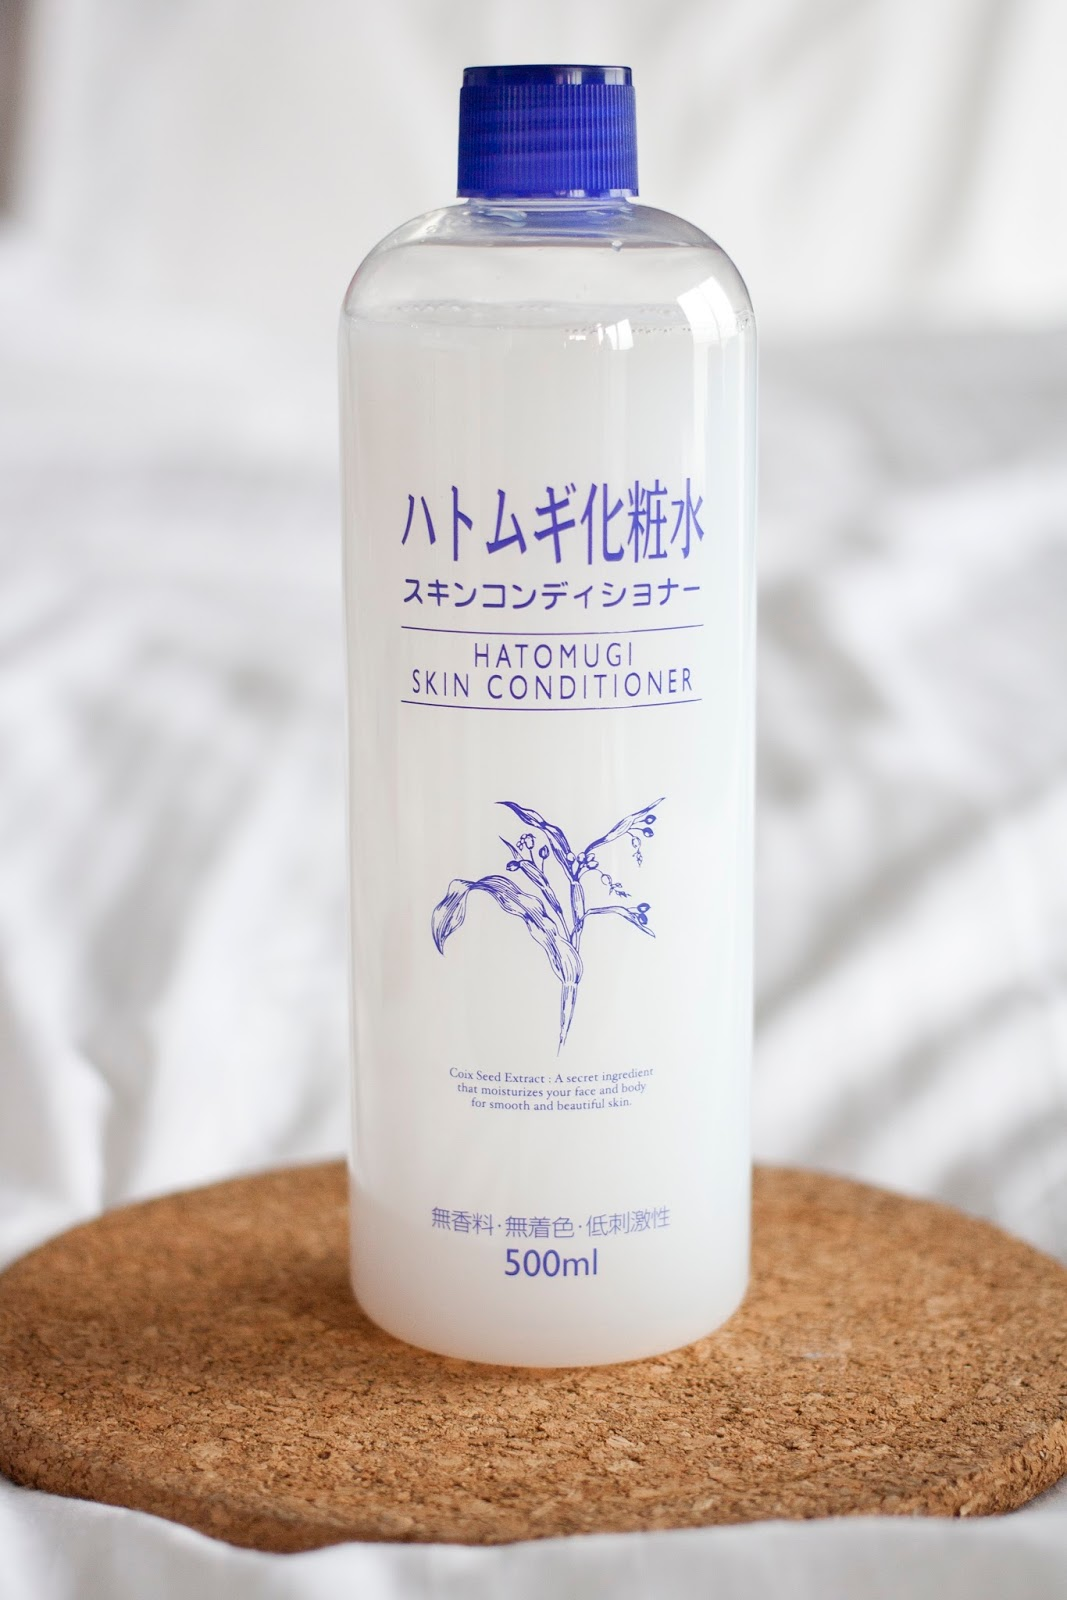 The First Five Impressions Feat Naturie Naruko Senka Hatomugi Skin Conditioner 500ml My Today Are Hatumogi Speedy Perfect Whip Cleanser Taiwan Magnolia Brightening And Firming Cream Wash